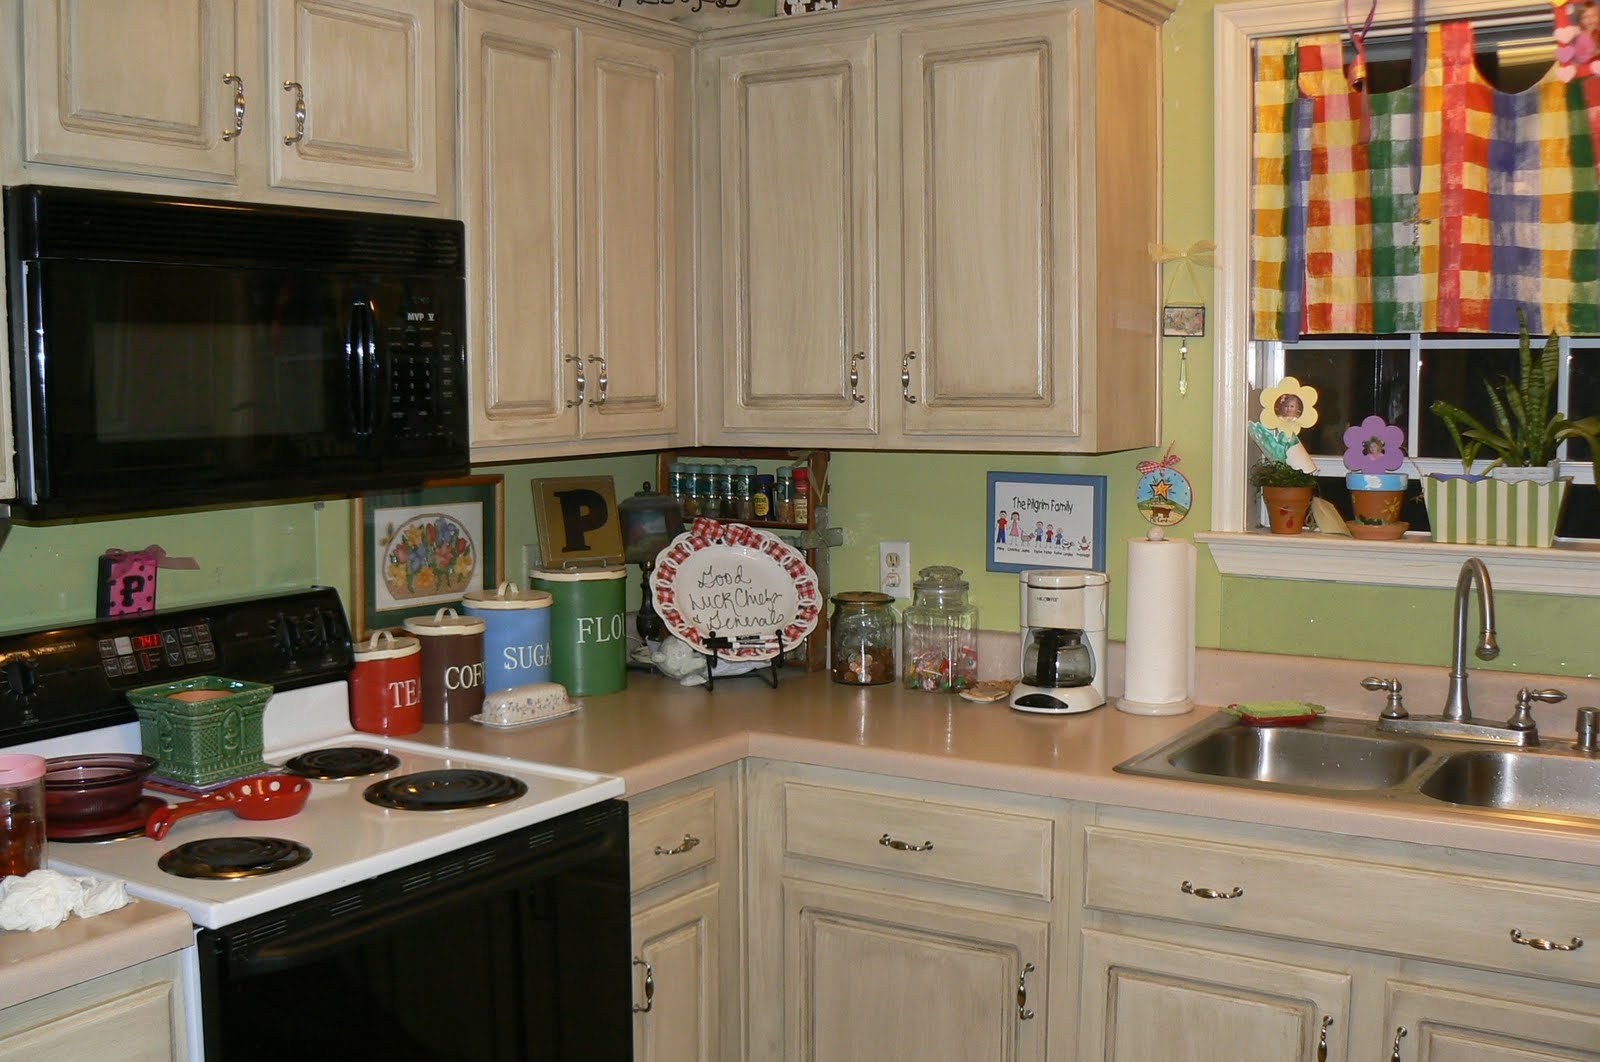 The exciting How to glaze kitchen cabinets for painting images